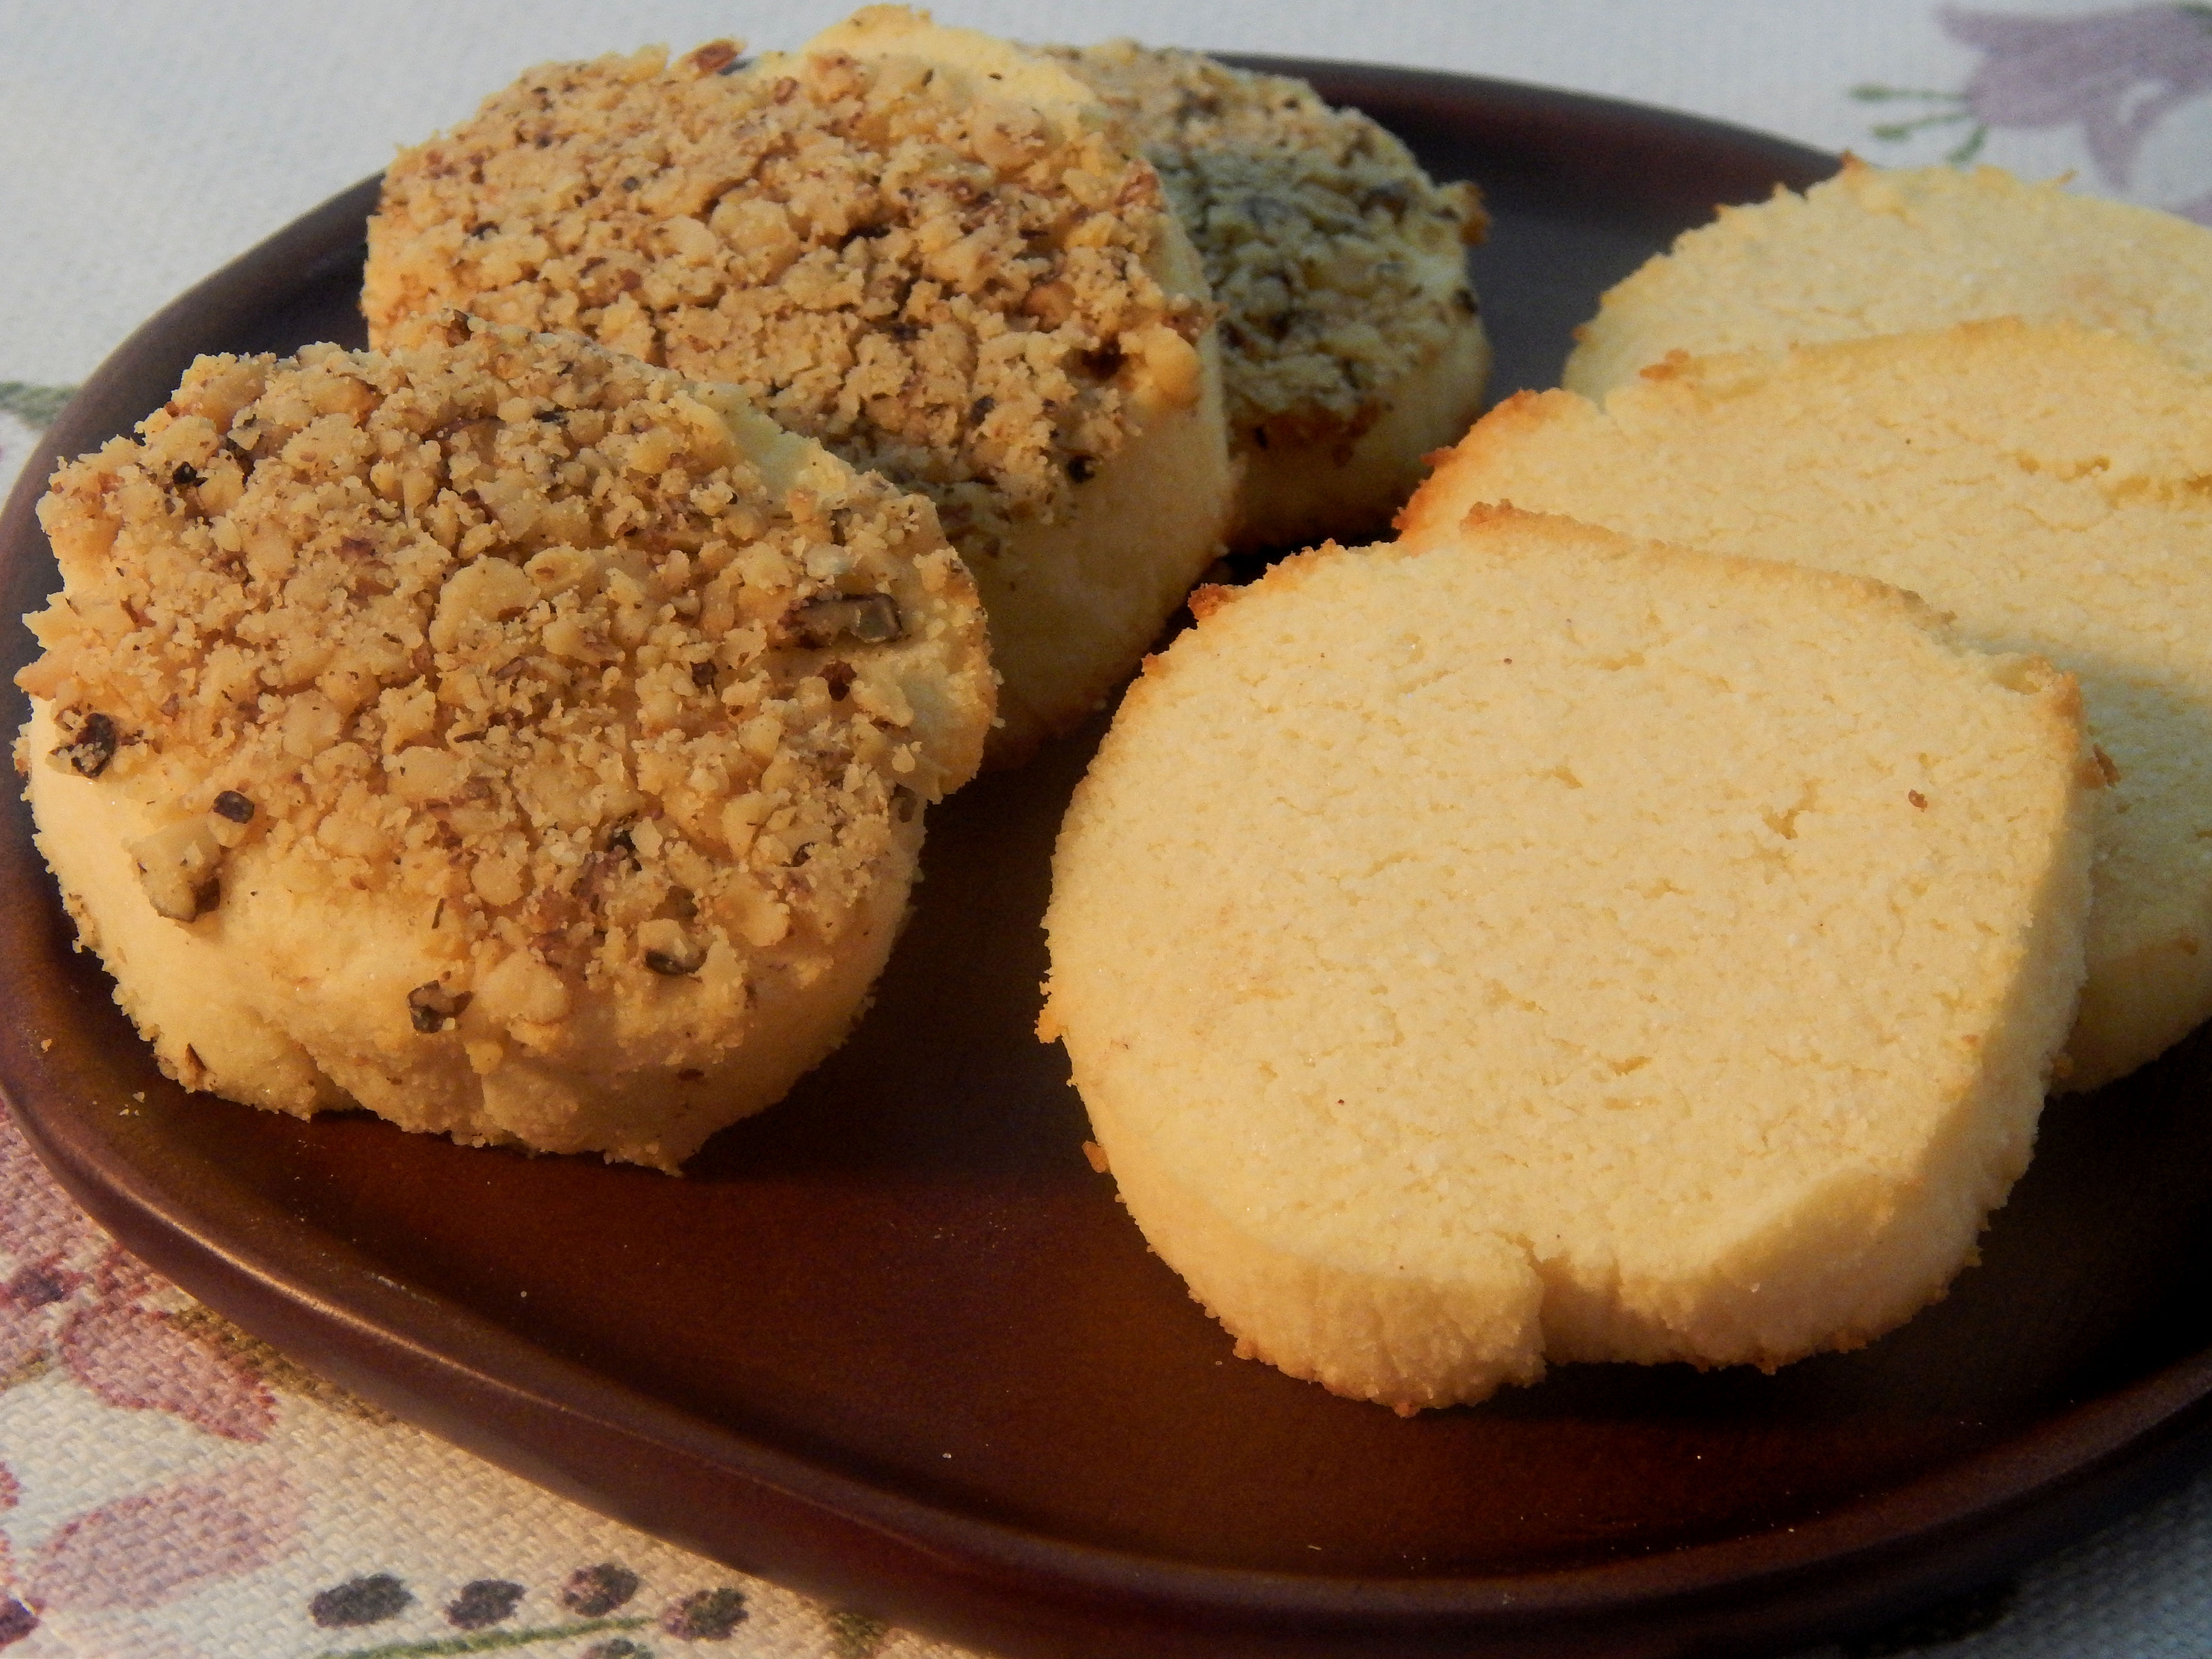 Gluten-Free and Low-Carb Cream Cheese Cookies